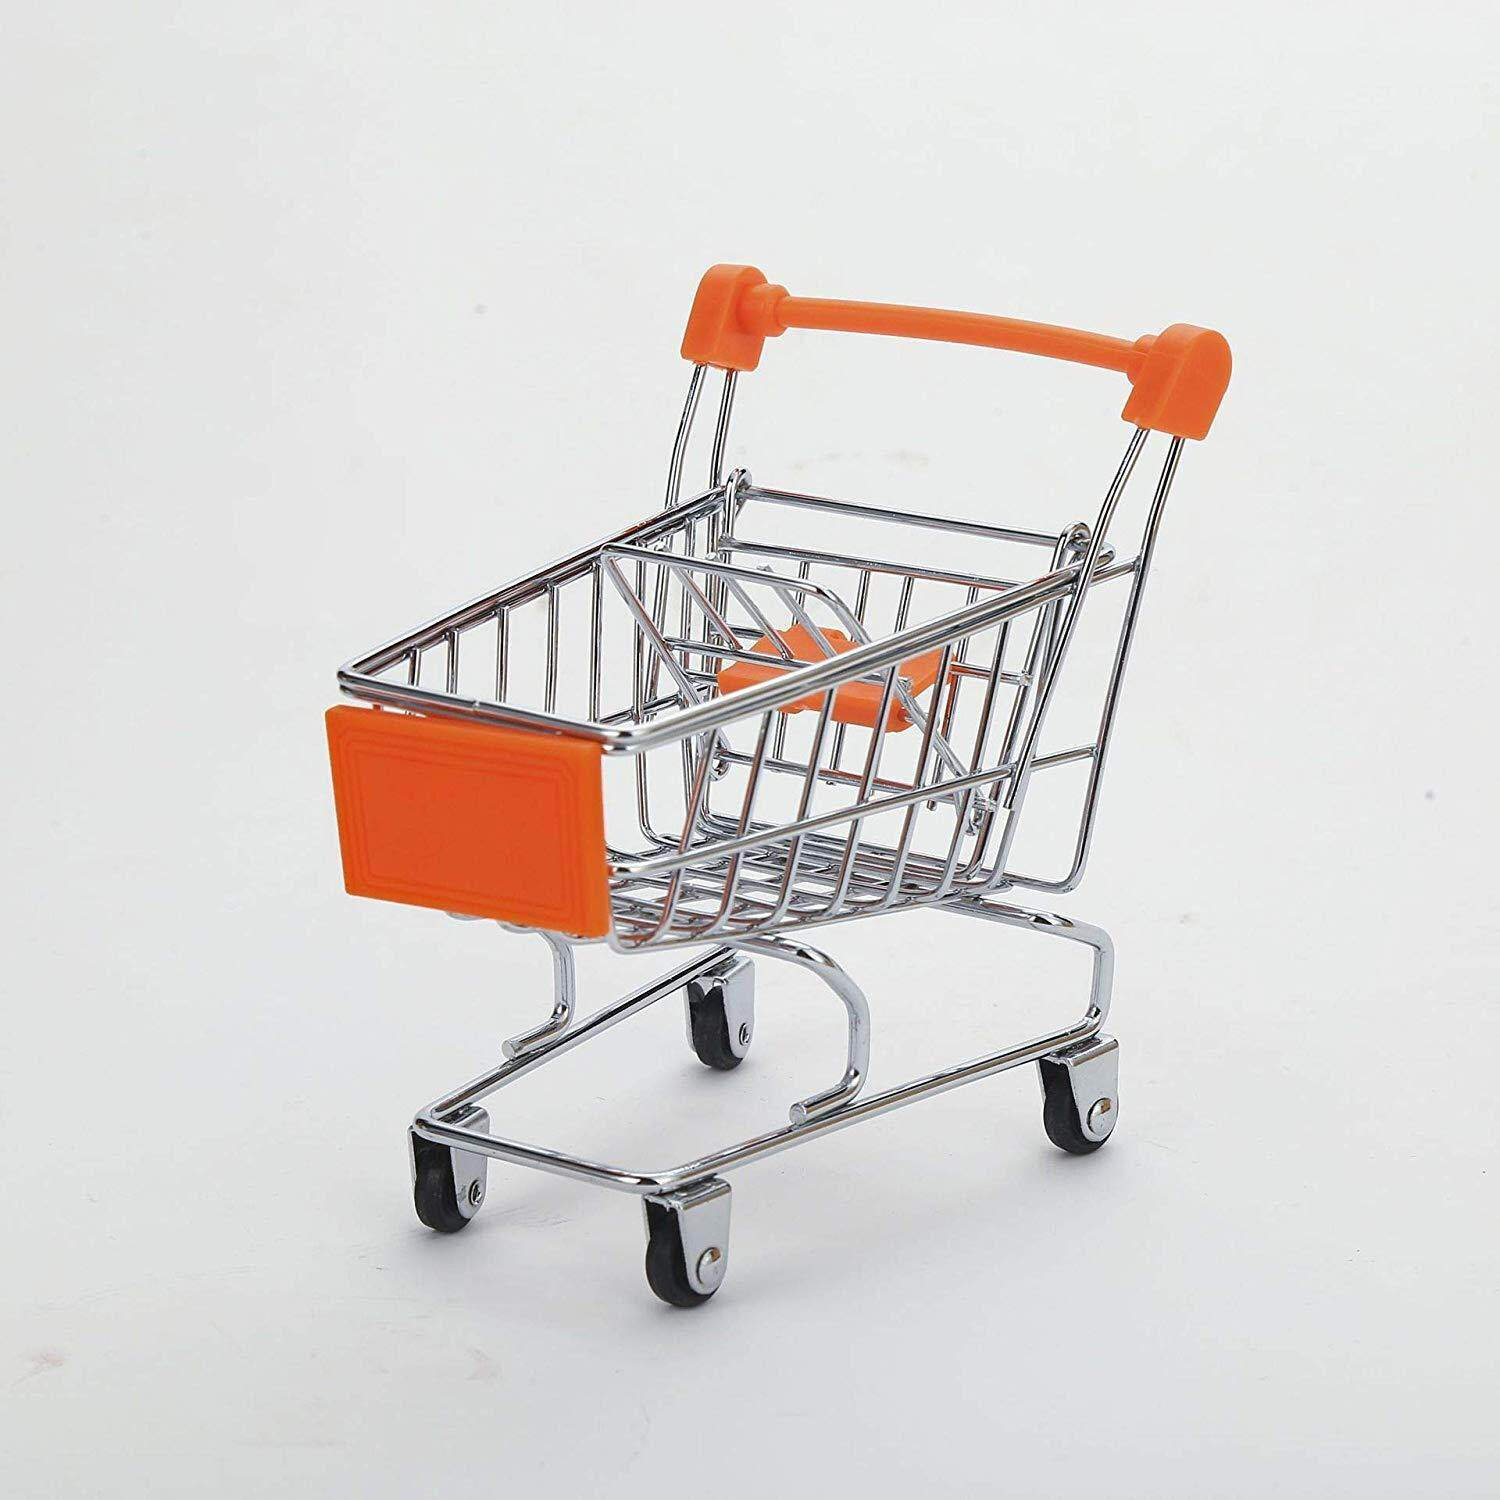 Fly Array Kids Mini Shopping Cart Roll Wheel Moving Doll Toys Holder Cool Desk Holder Tiny Cute Supermarket Cart Trolly Sturdy Metal Novelty Adorable Gifts for Children (Orange, XS(4.5×3.4×4.7 inch))